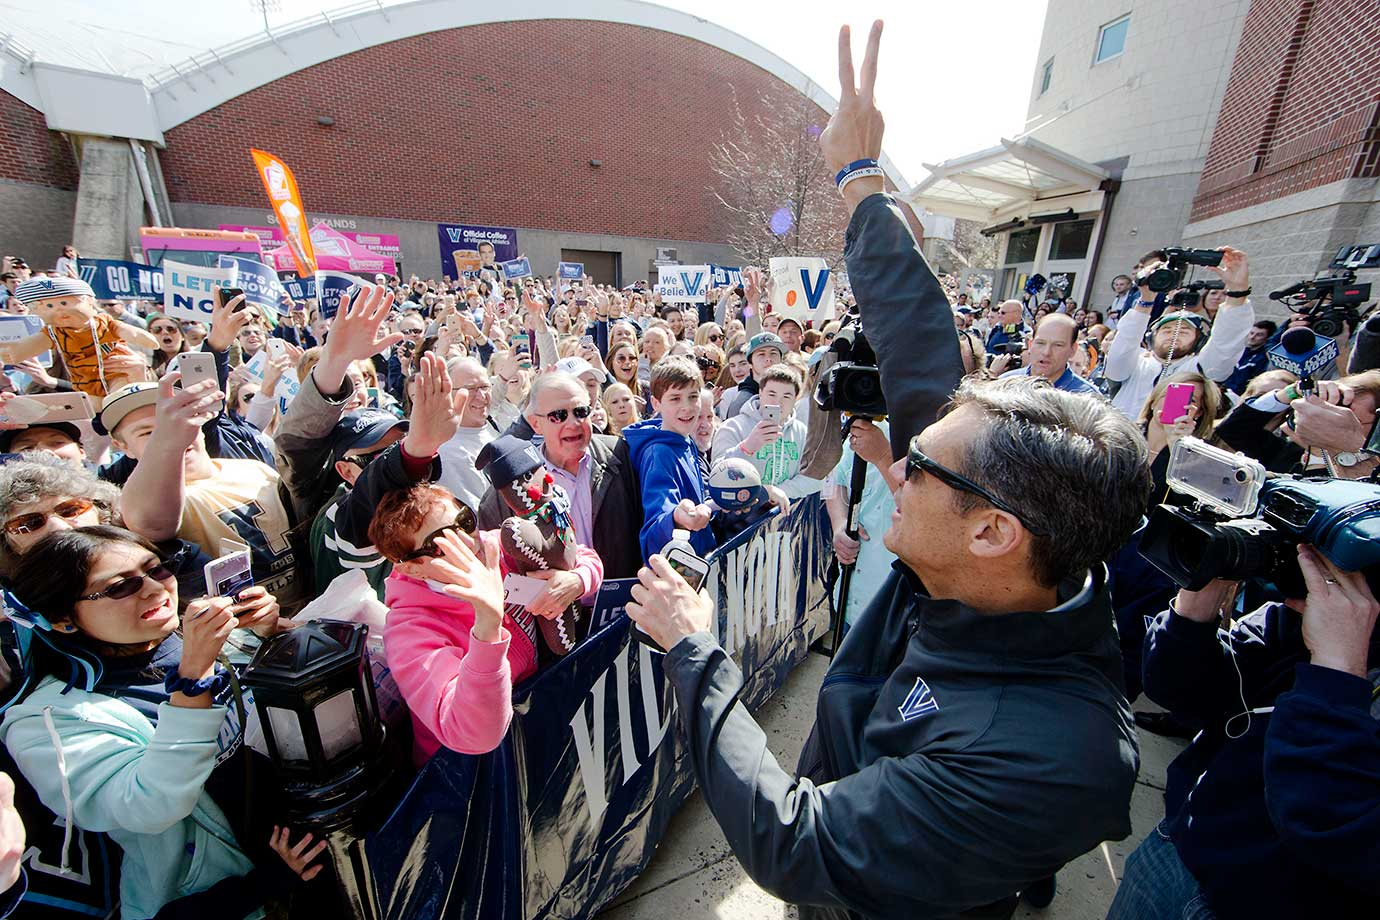 Villanova head coach Jay Wright gestures to fans as the team departs for the Final Four in Houston.